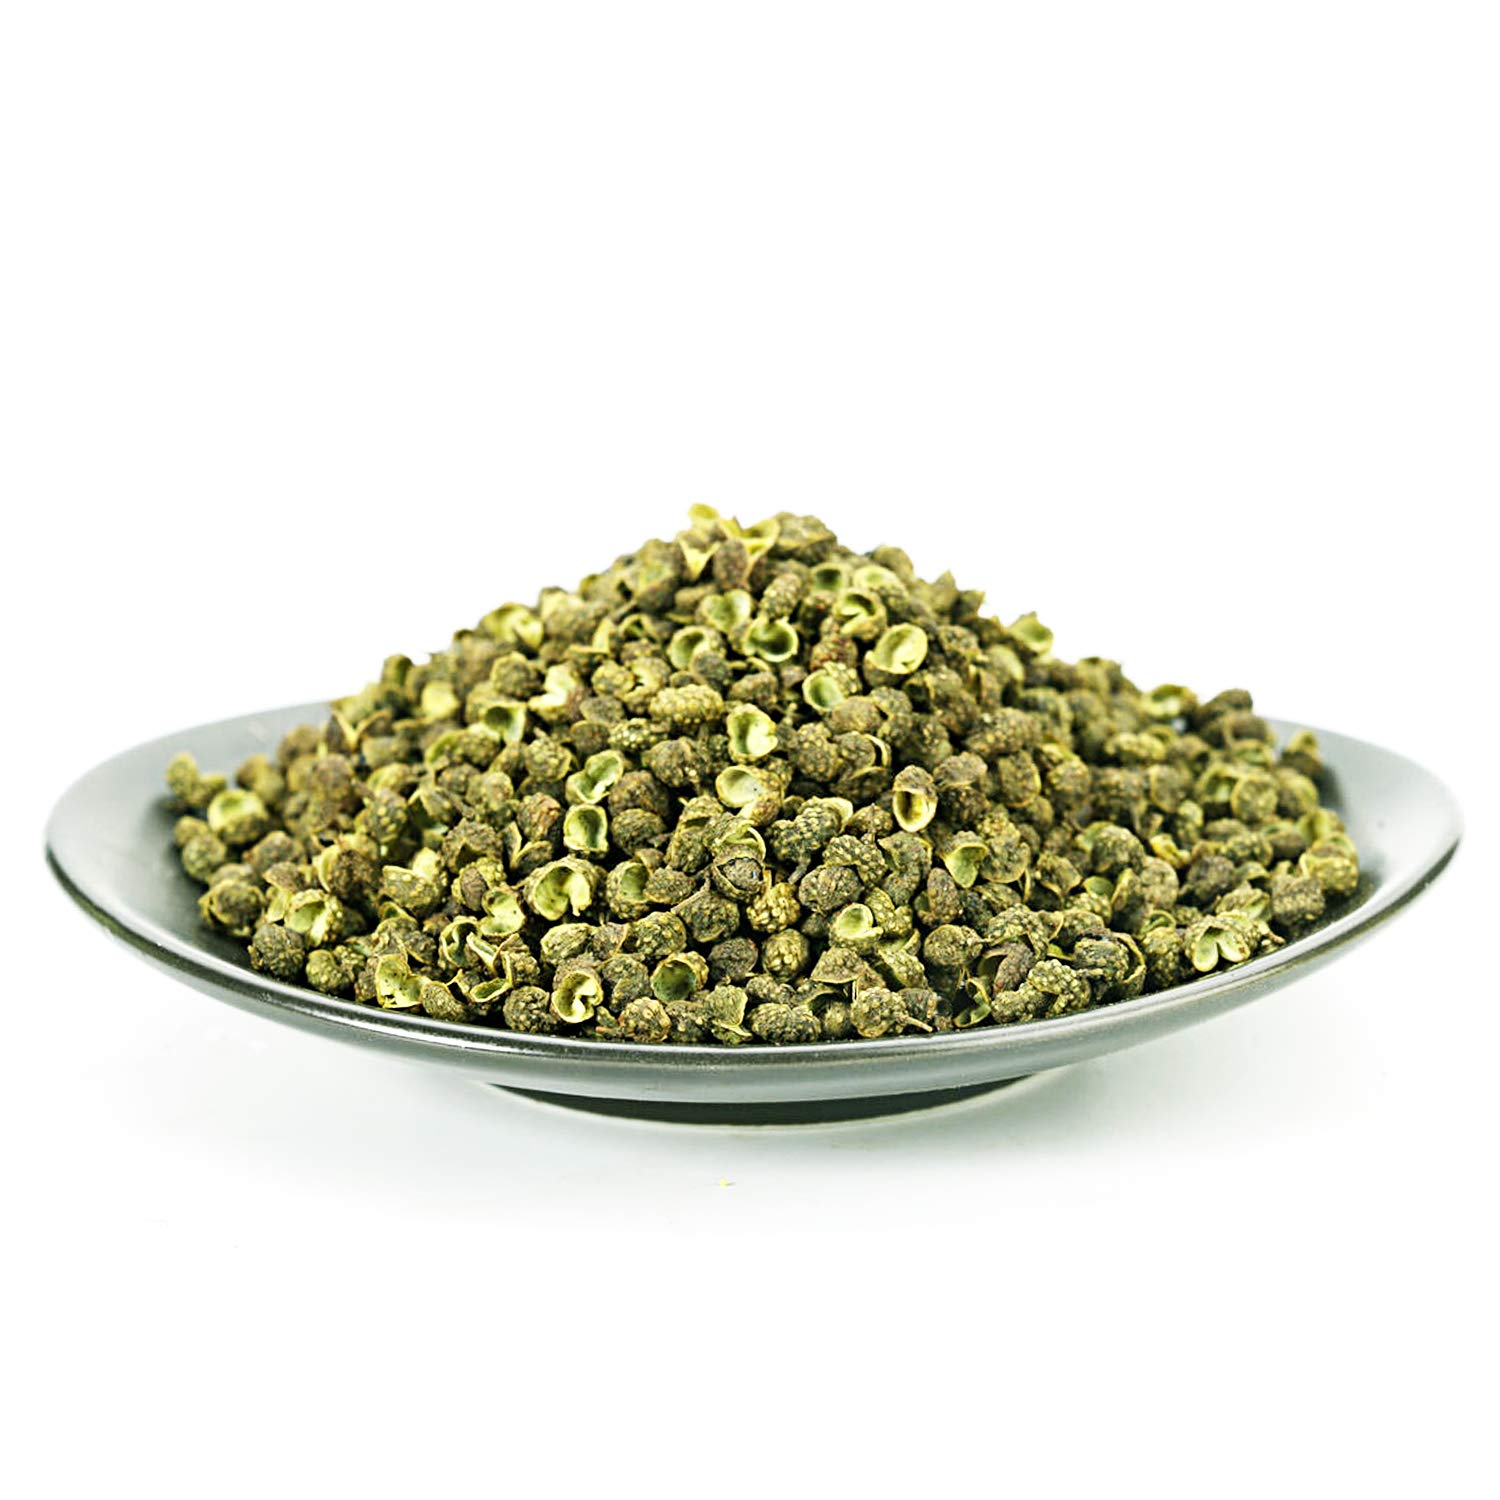 Goofoo Sichuan Green Peppercorns Grade AAA+ Premium Authentic Chinese Whole Peppercorn,Few Seeds, Strong Flavor,2.1 oz